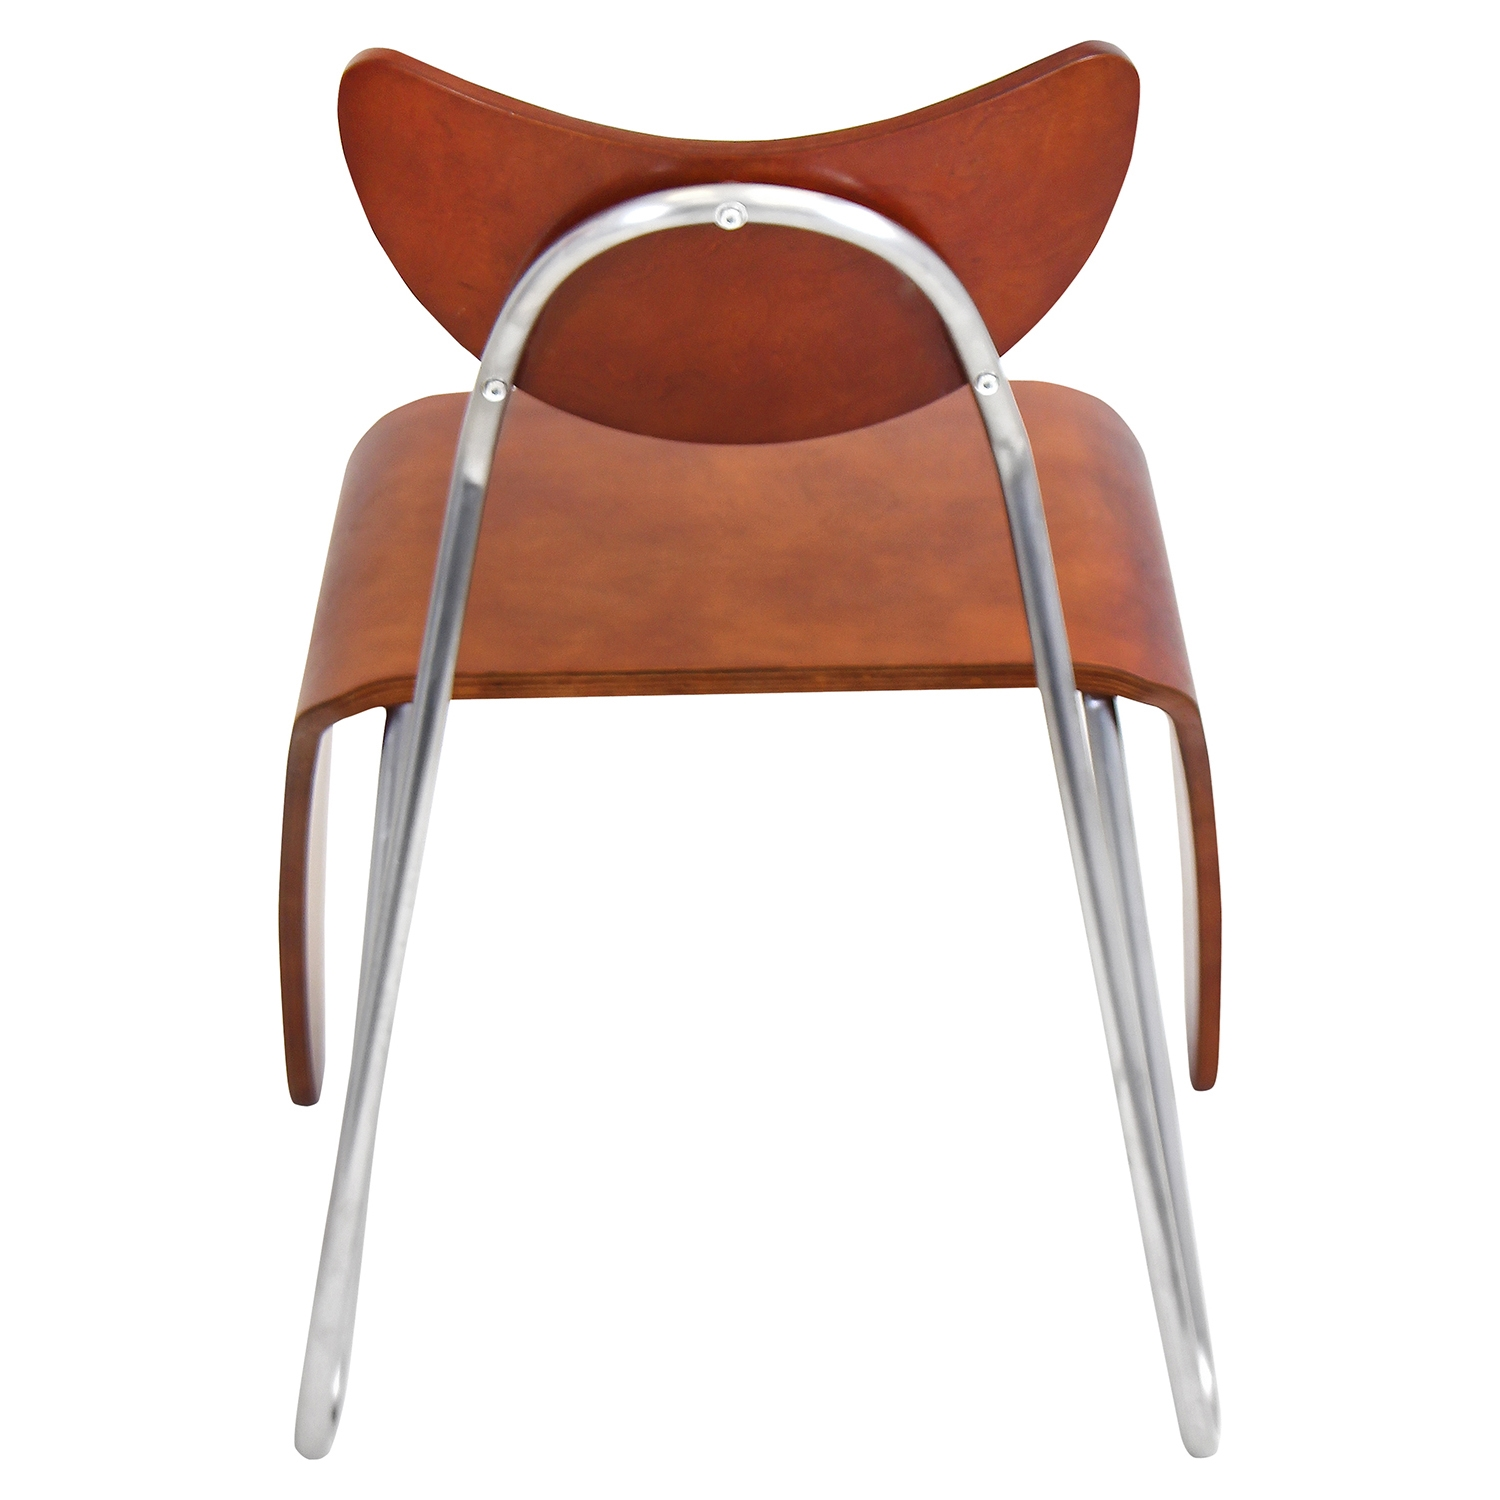 Toro Wood Chair - Walnut - LMS-CHR-TORO